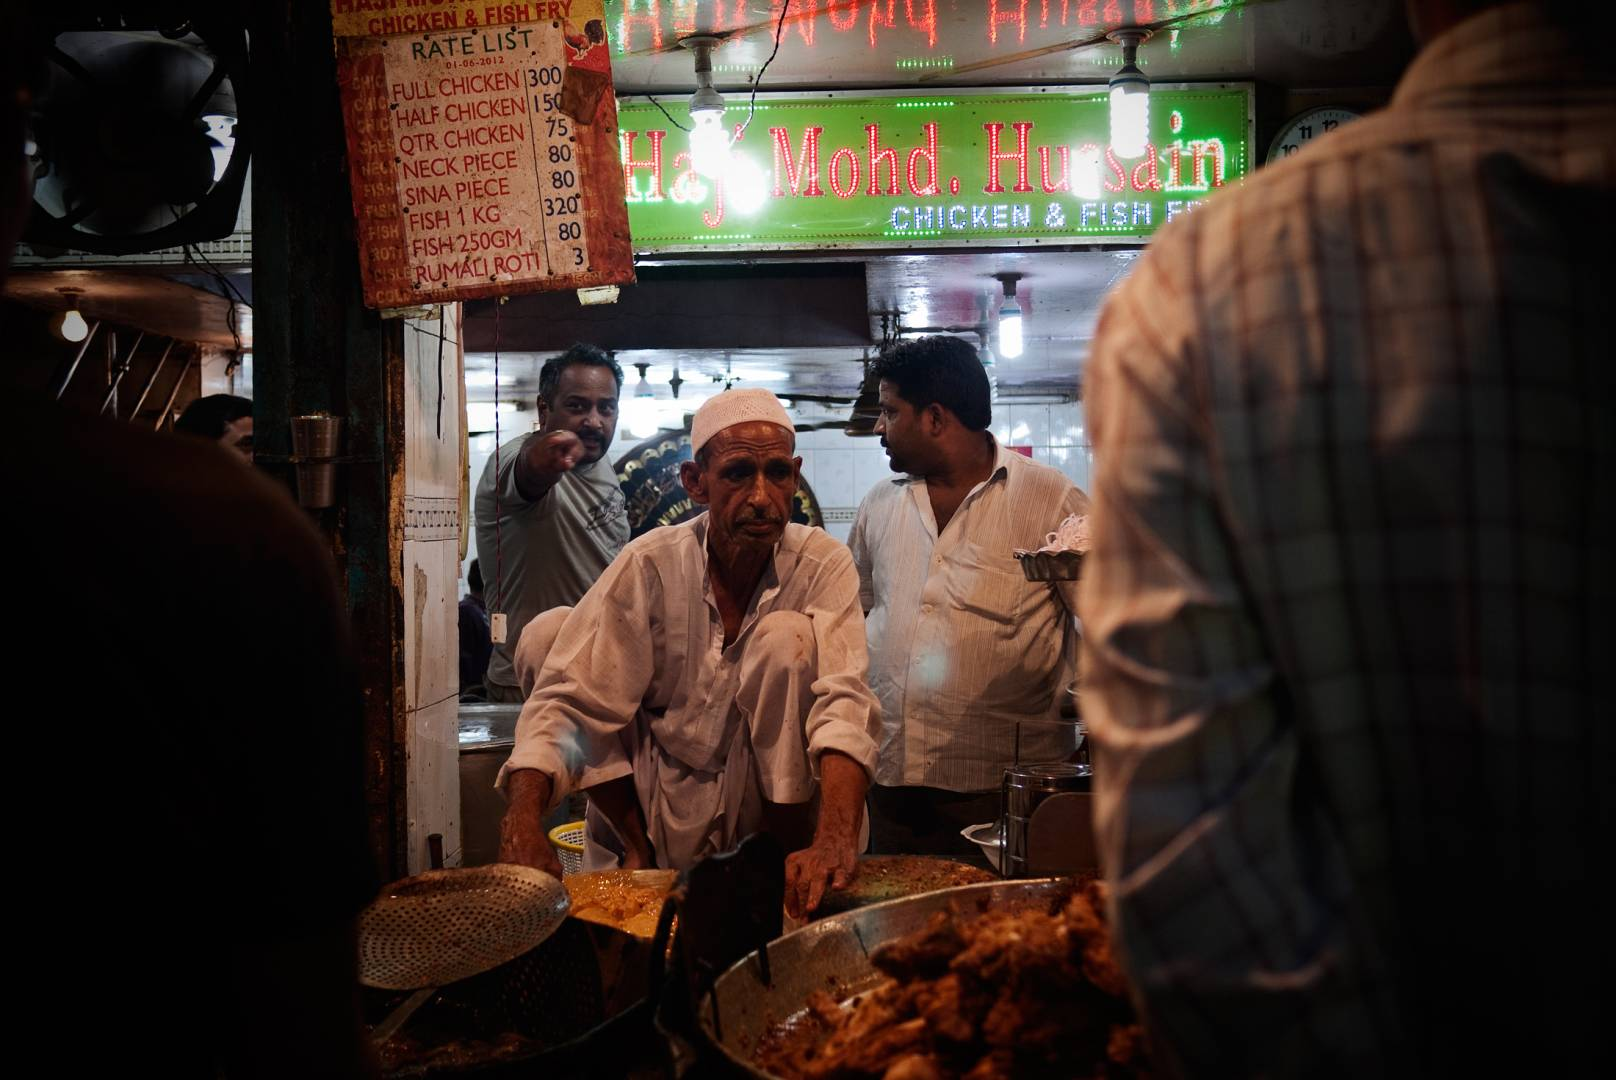 Haji Mohd. Hussain Chicken and Fish Fry, Matia Mahal, Jama Masjid area. The shop does brisk business at iftar, the breaking of fast during the month of Ramzan.